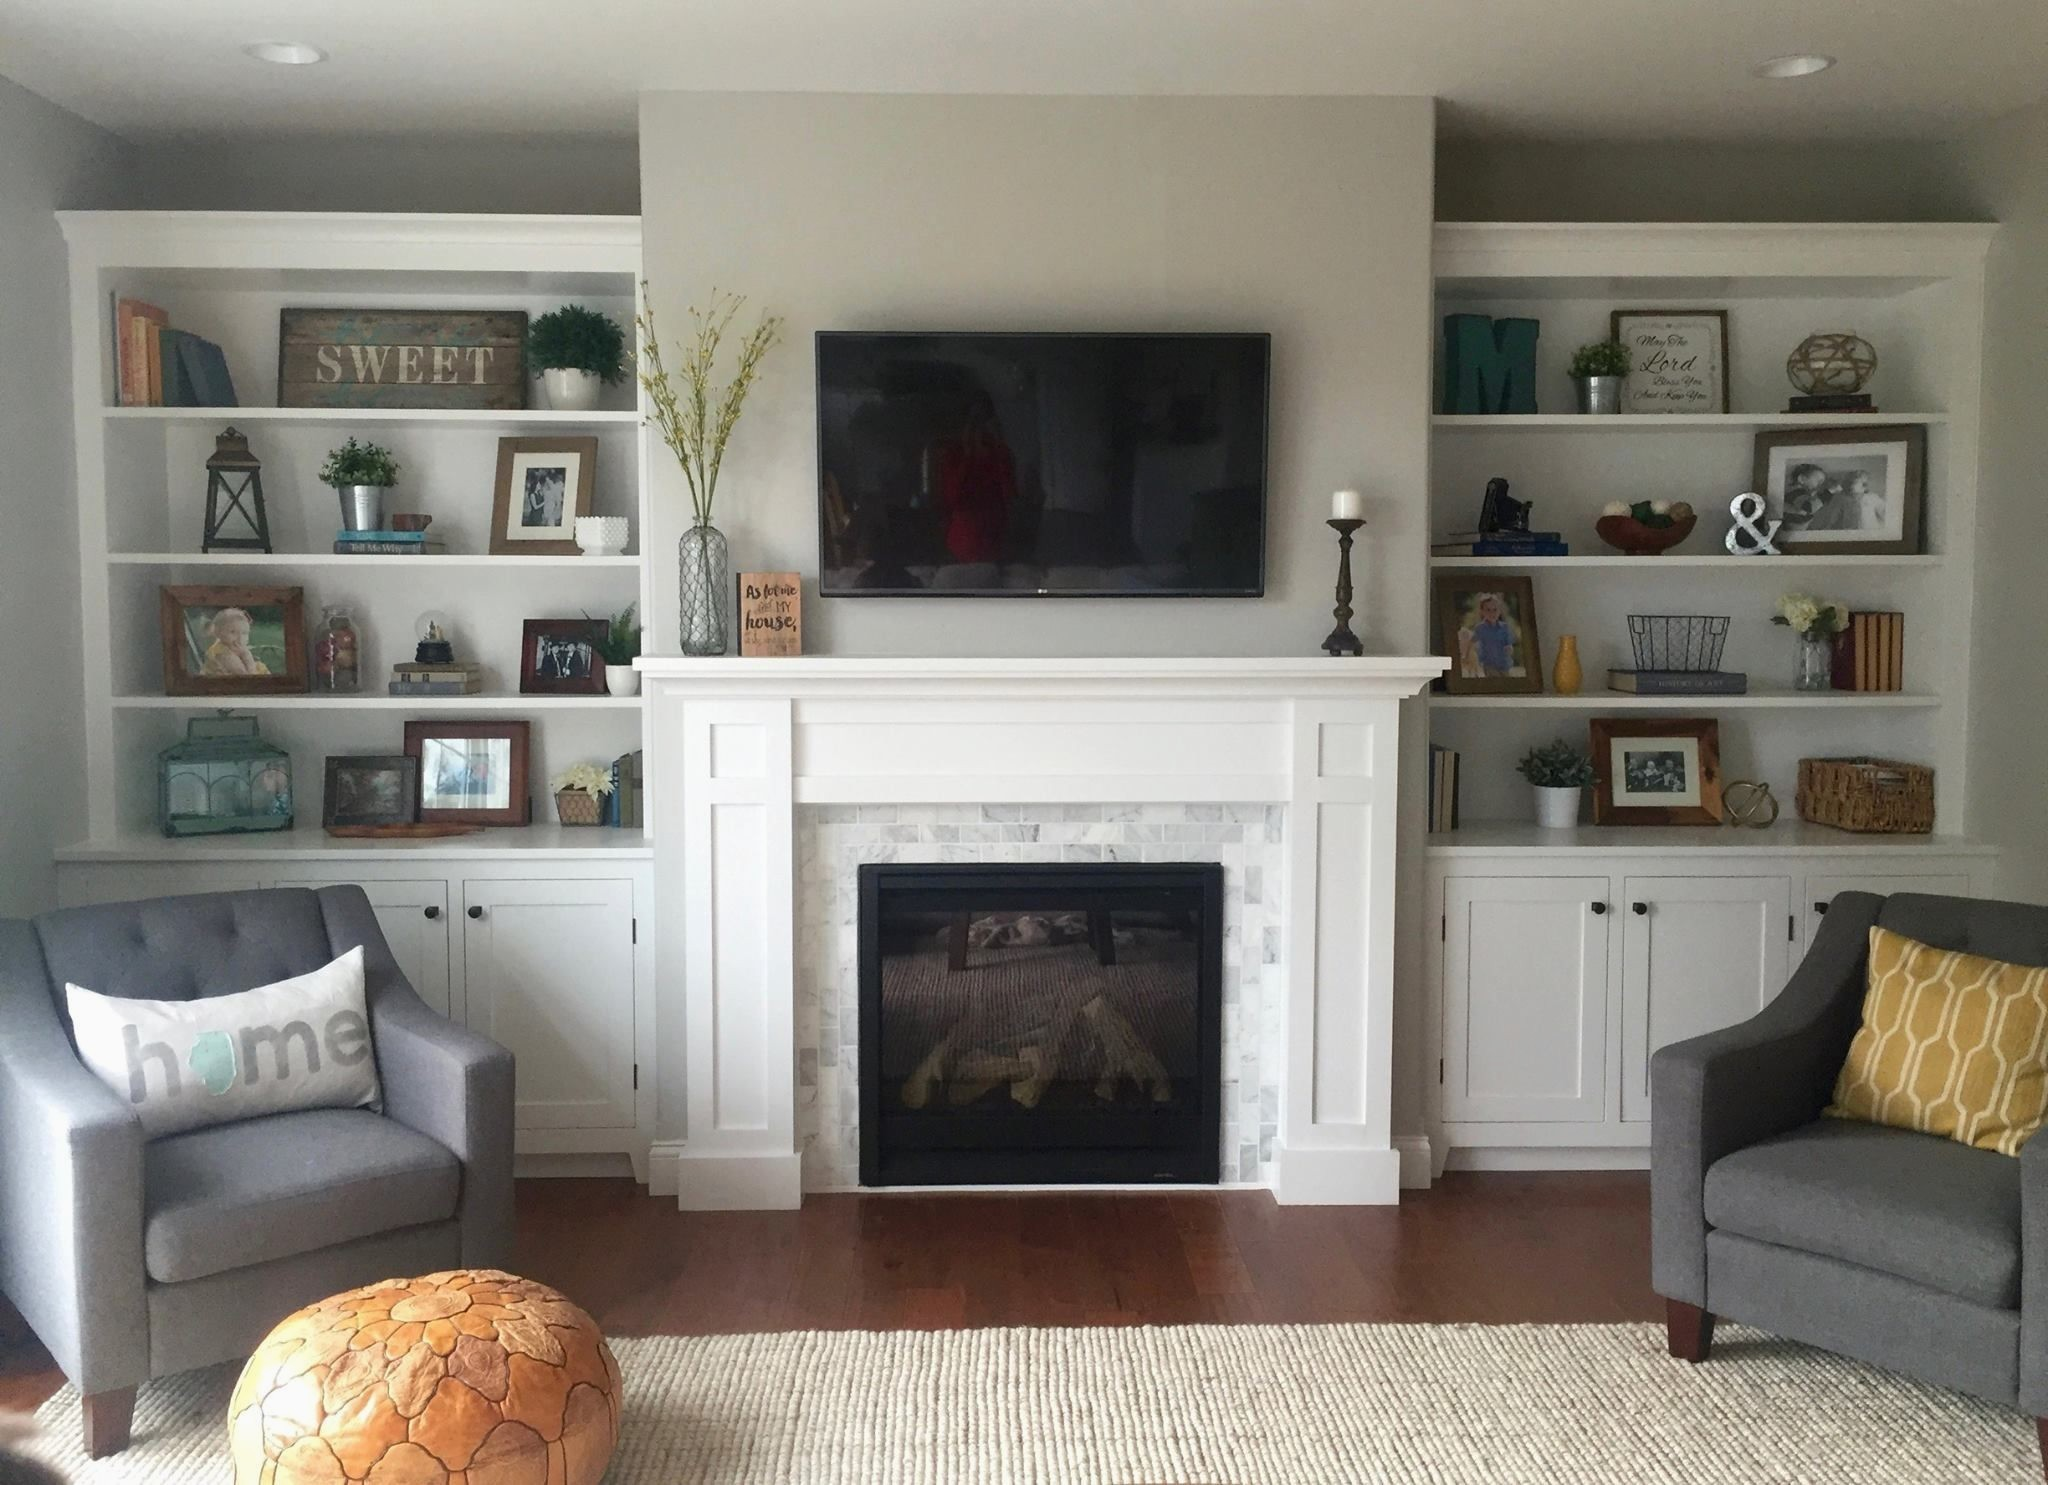 Tv Stand Bookcase Peaceful How to Build A Built In Part 1 3 the Cabinets